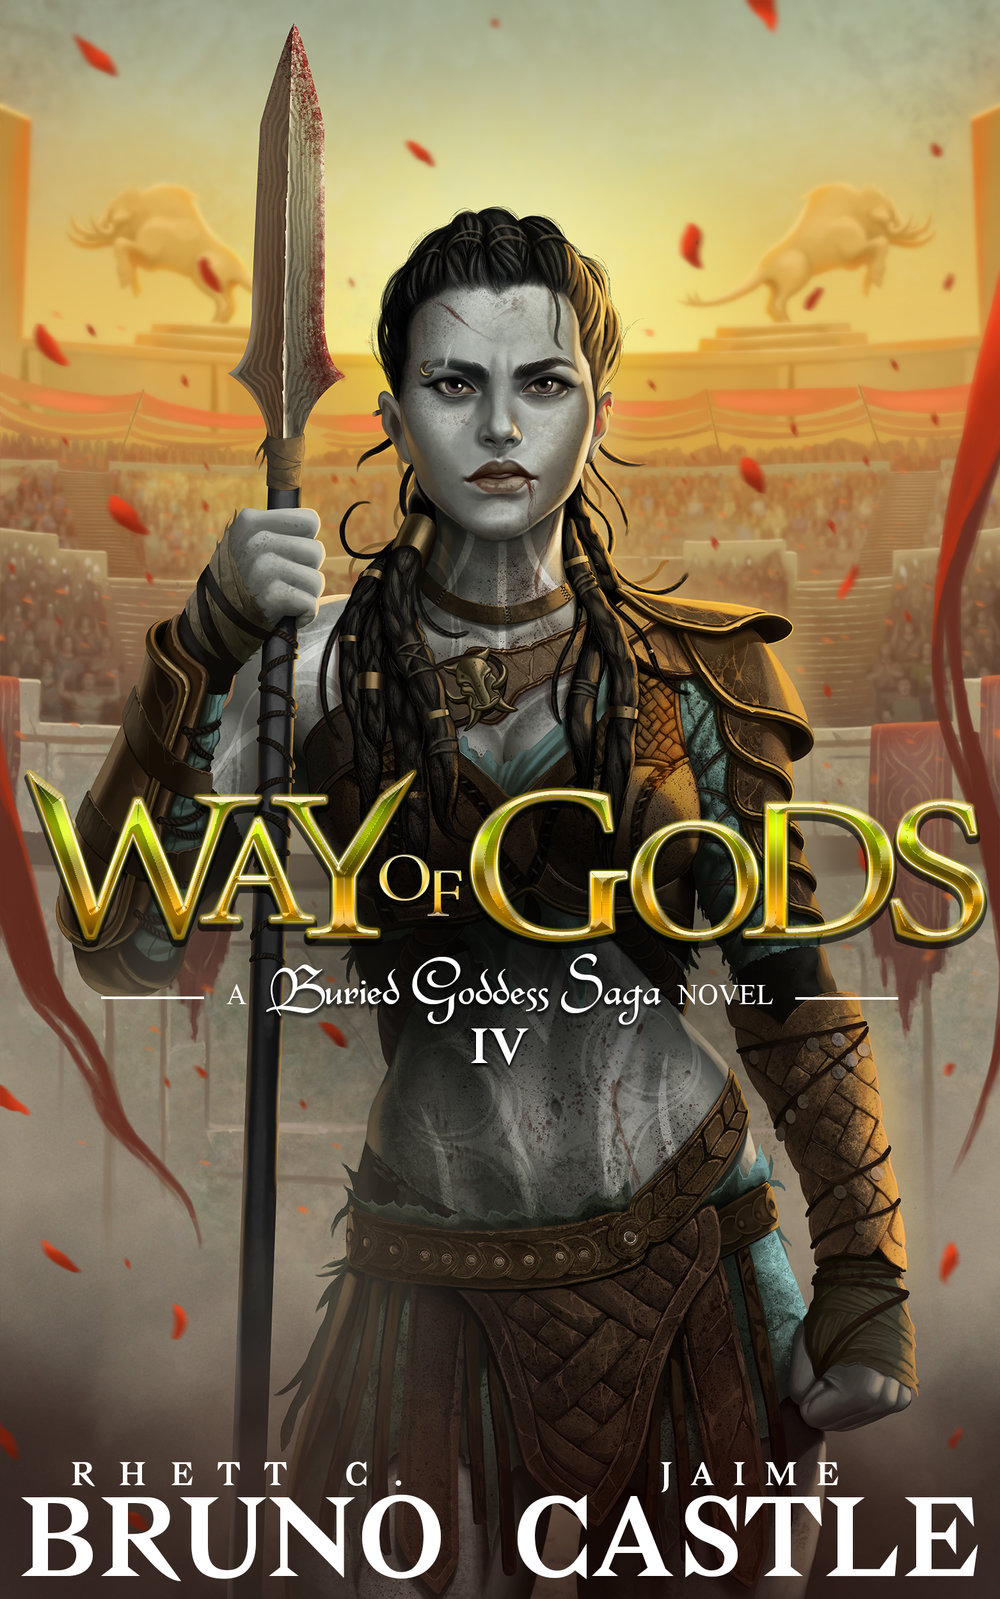 Way of Gods   Buried Goddess Saga Book 4  Rhett C. Bruno & Jaime Castle